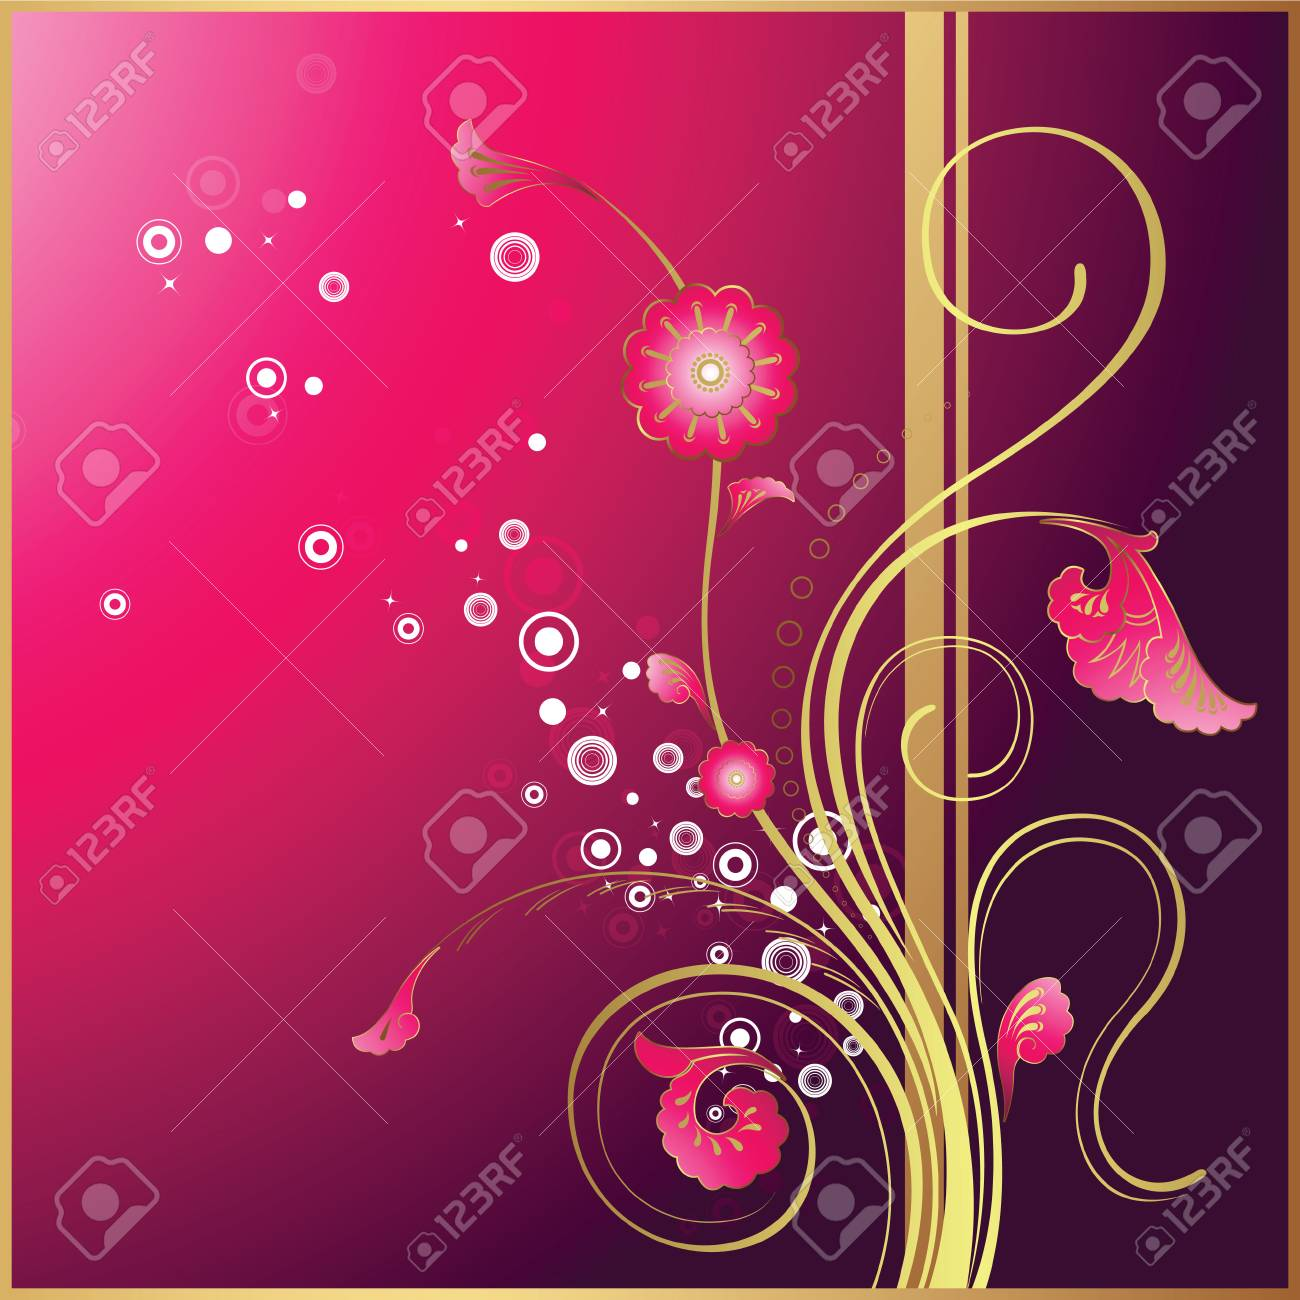 Floral Background Stock Vector - 3317540